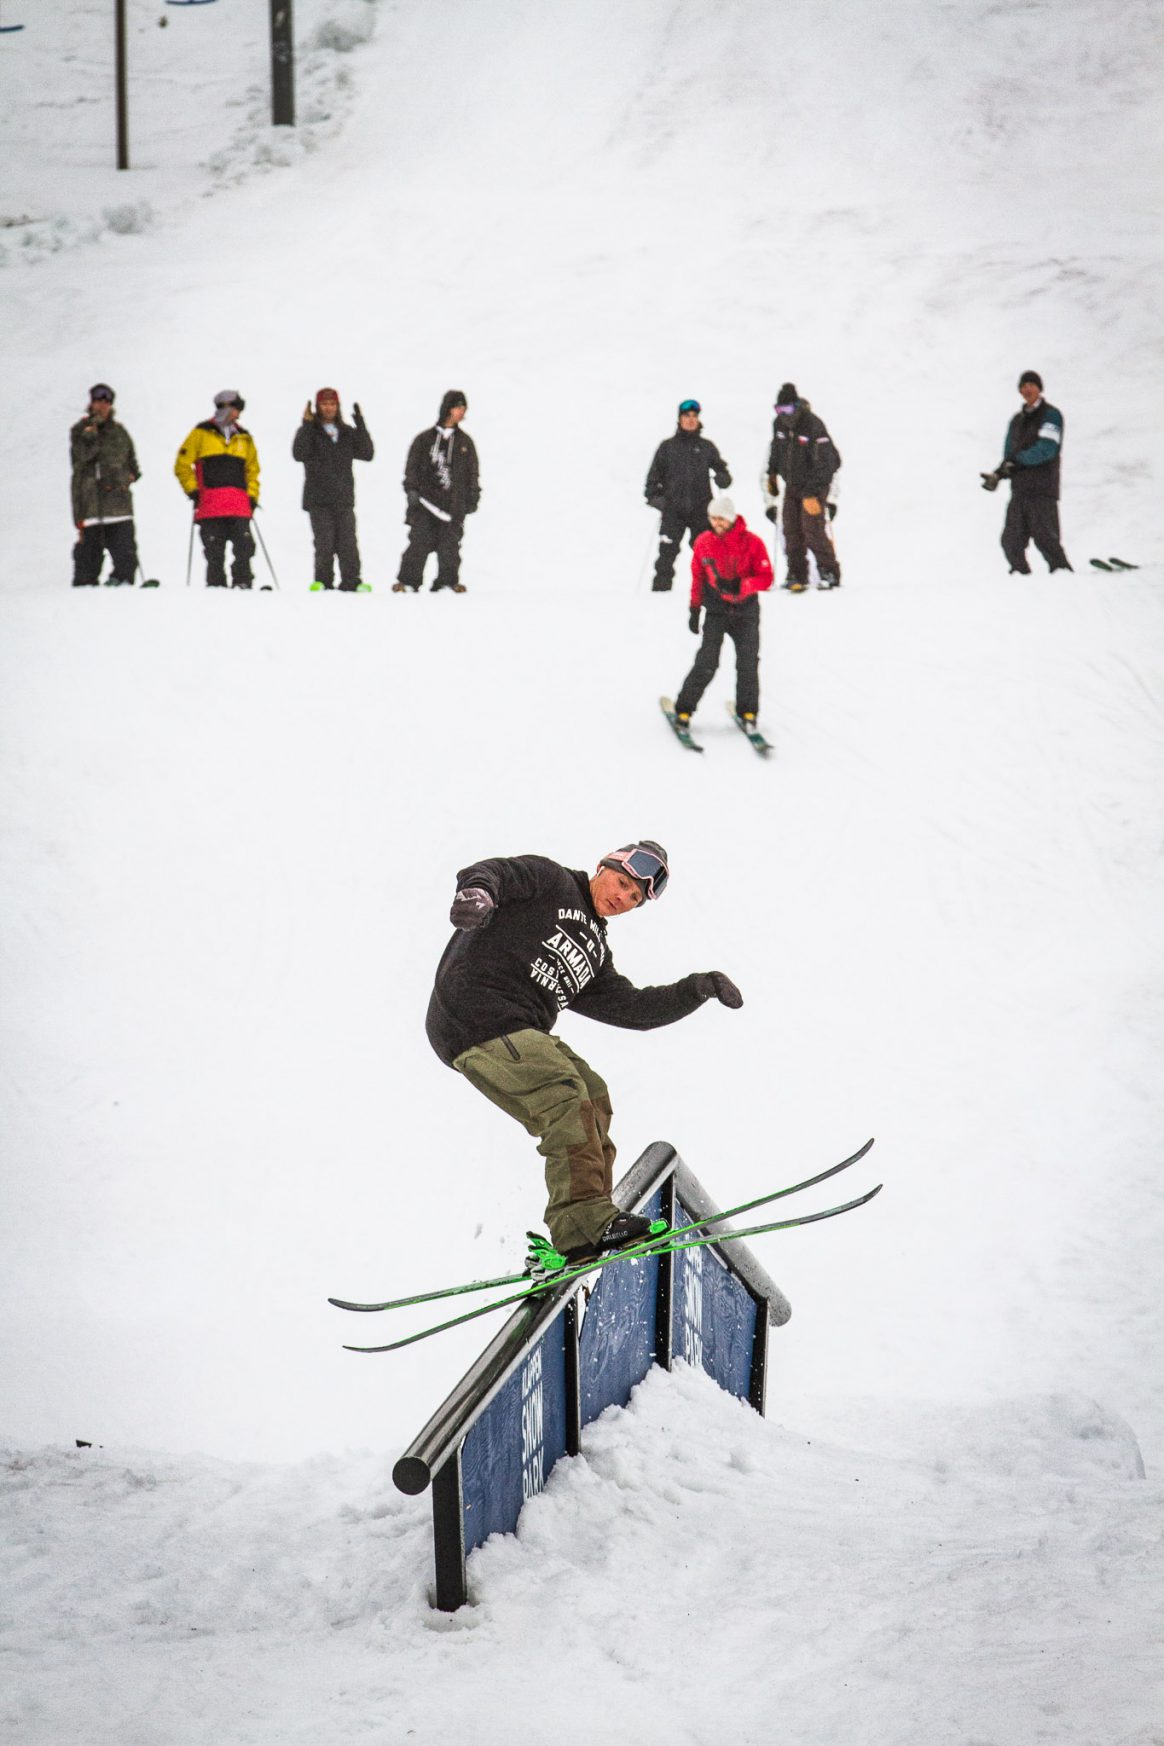 Oliver Karlberg slides a rail on Day 2 at Kimbo Sessions.